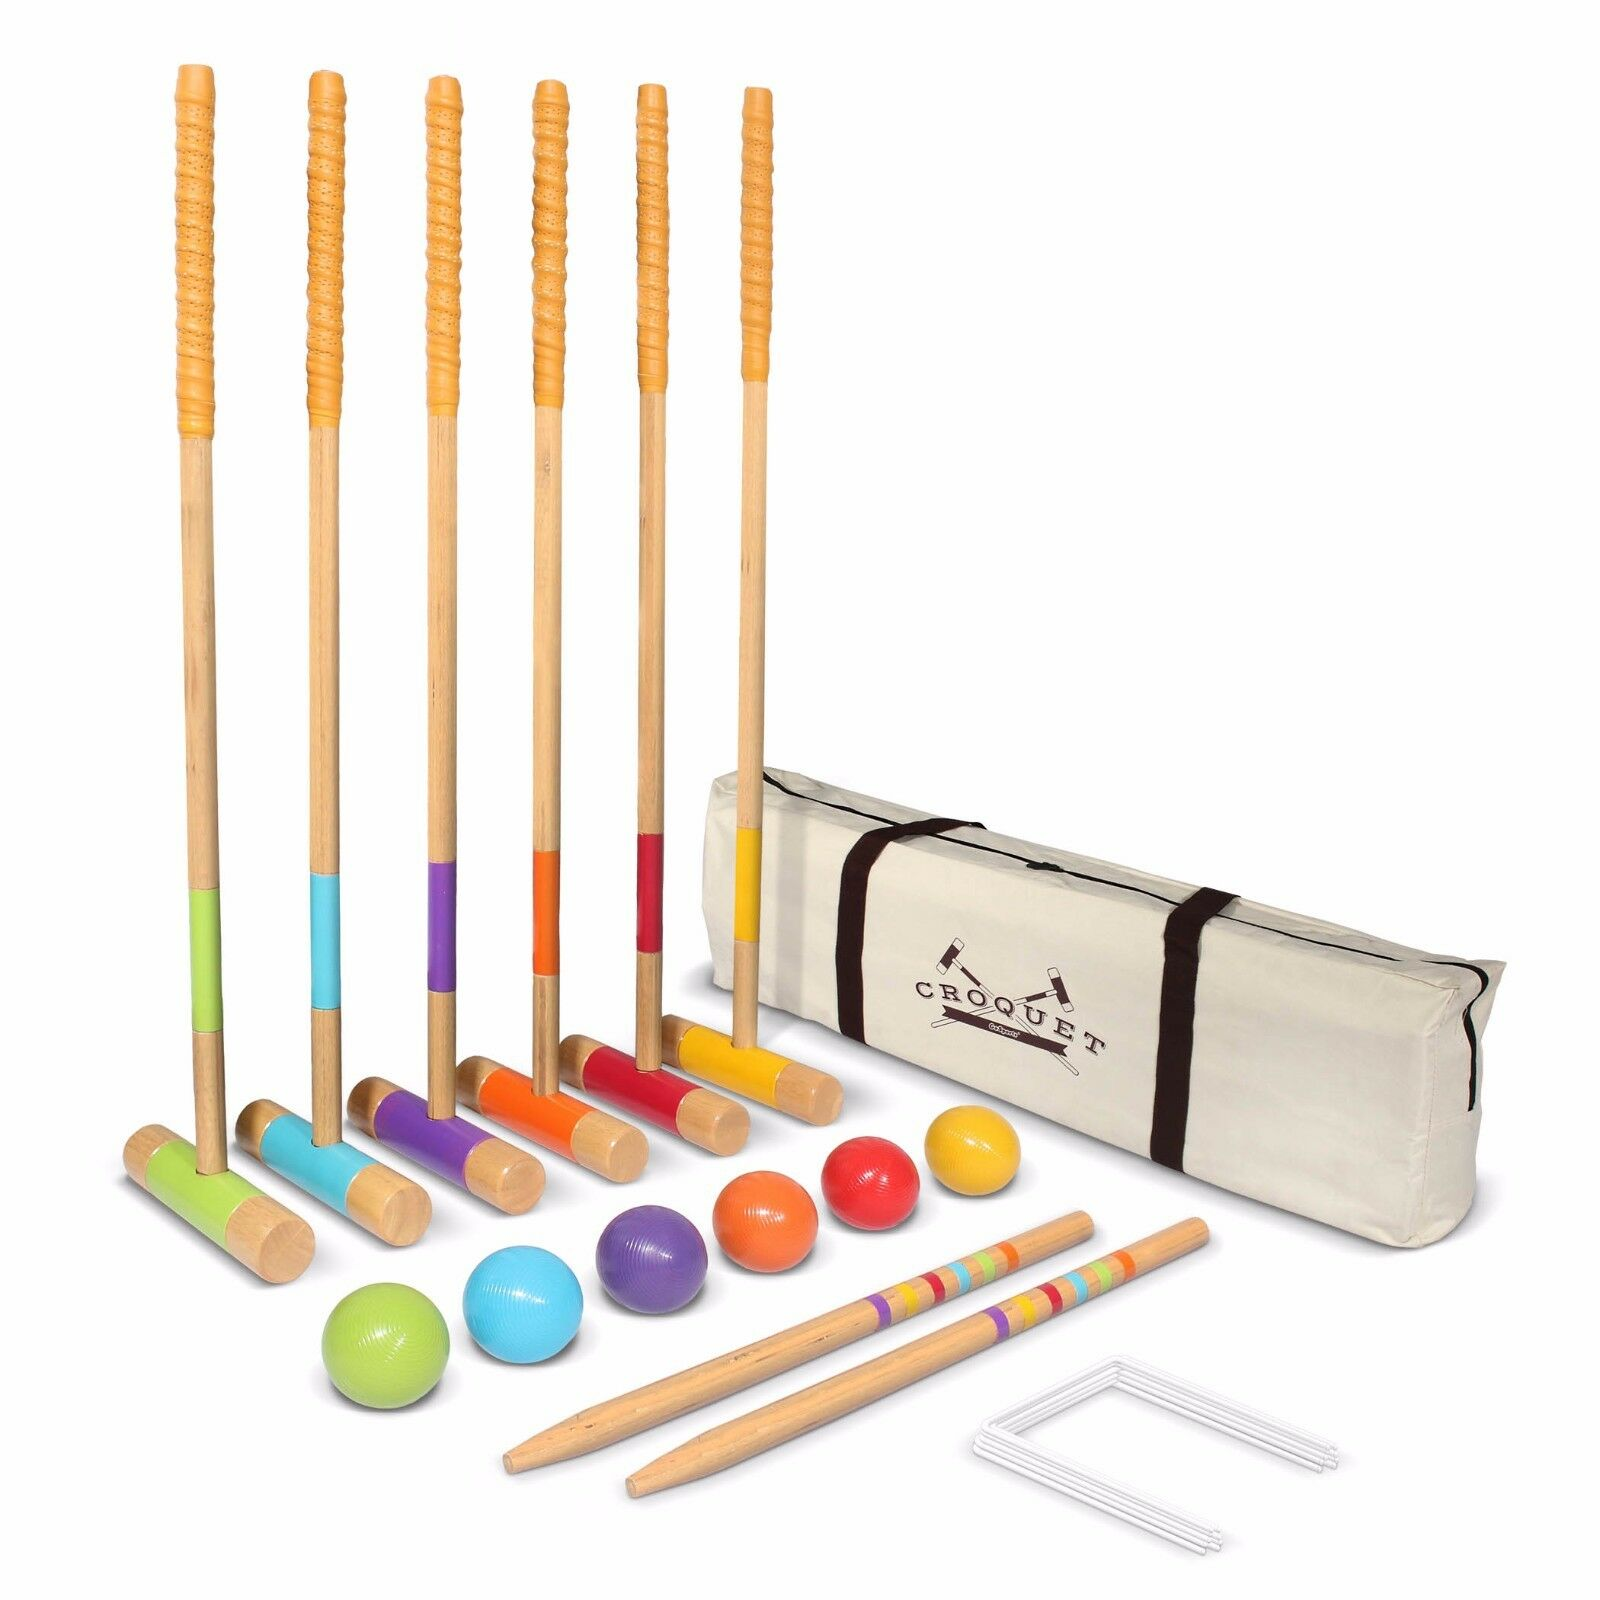 GoSports Premium Croquet Set for Adults & Kids with FREE Carrying Case